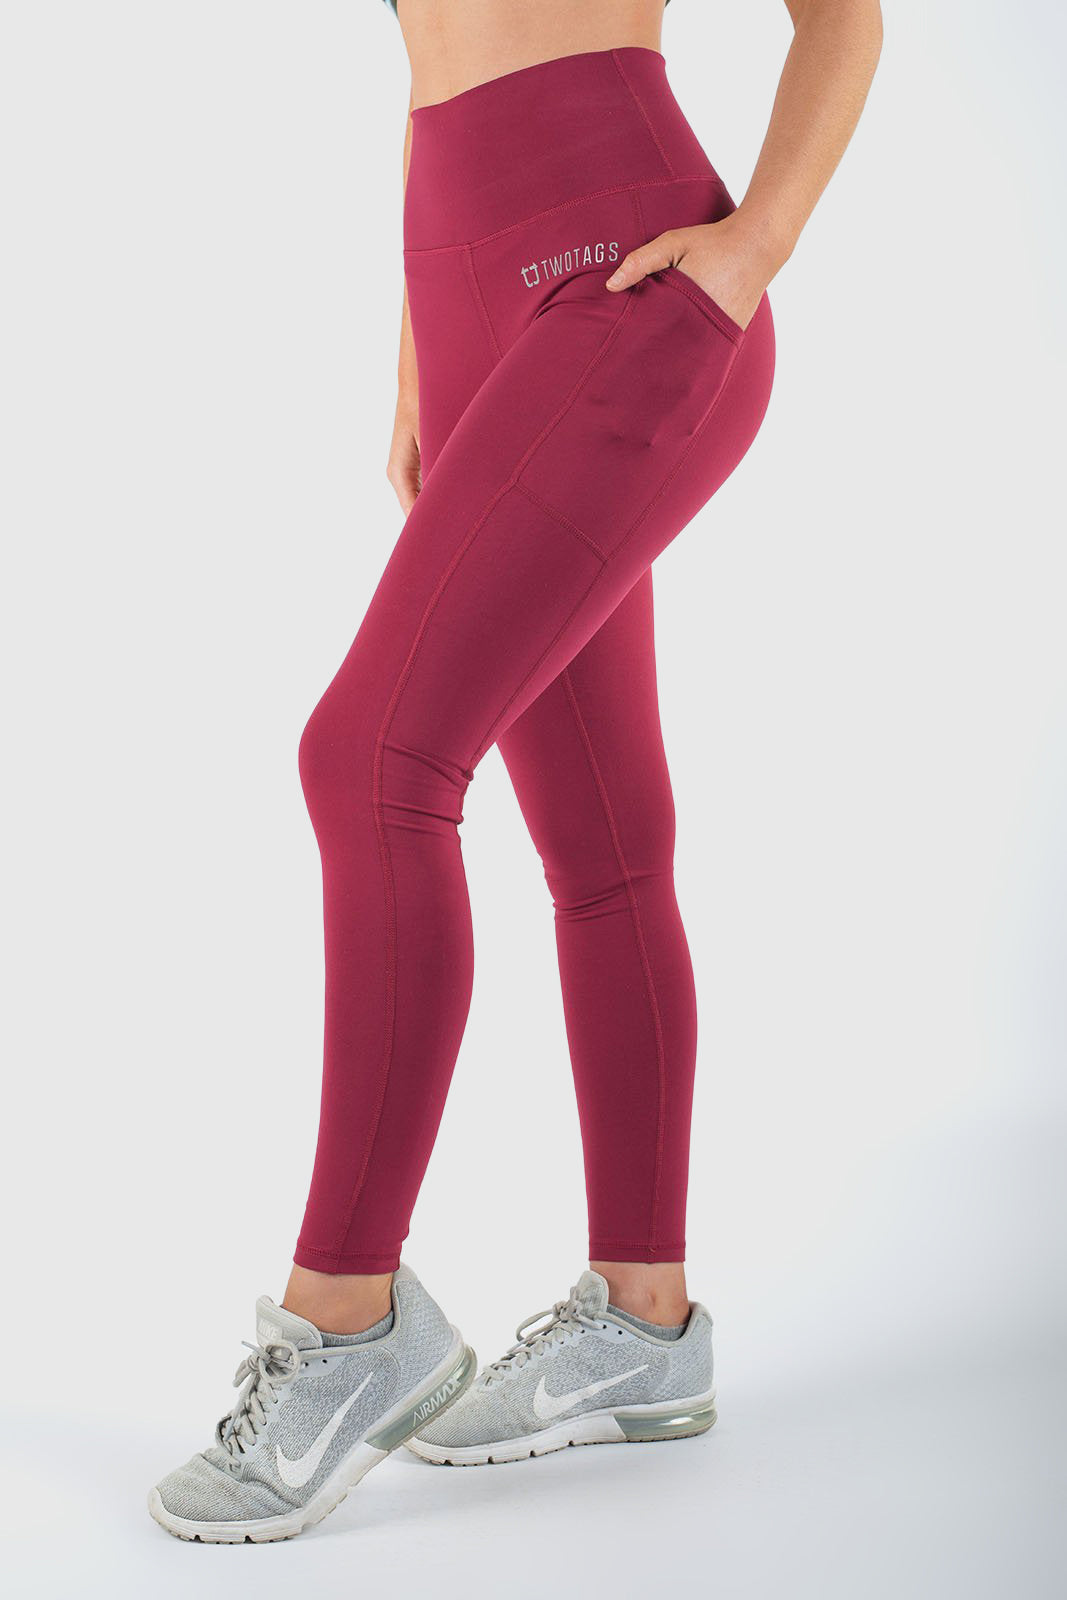 Twotags Ladies Highwaisted Core V2 Leggings – Cherry